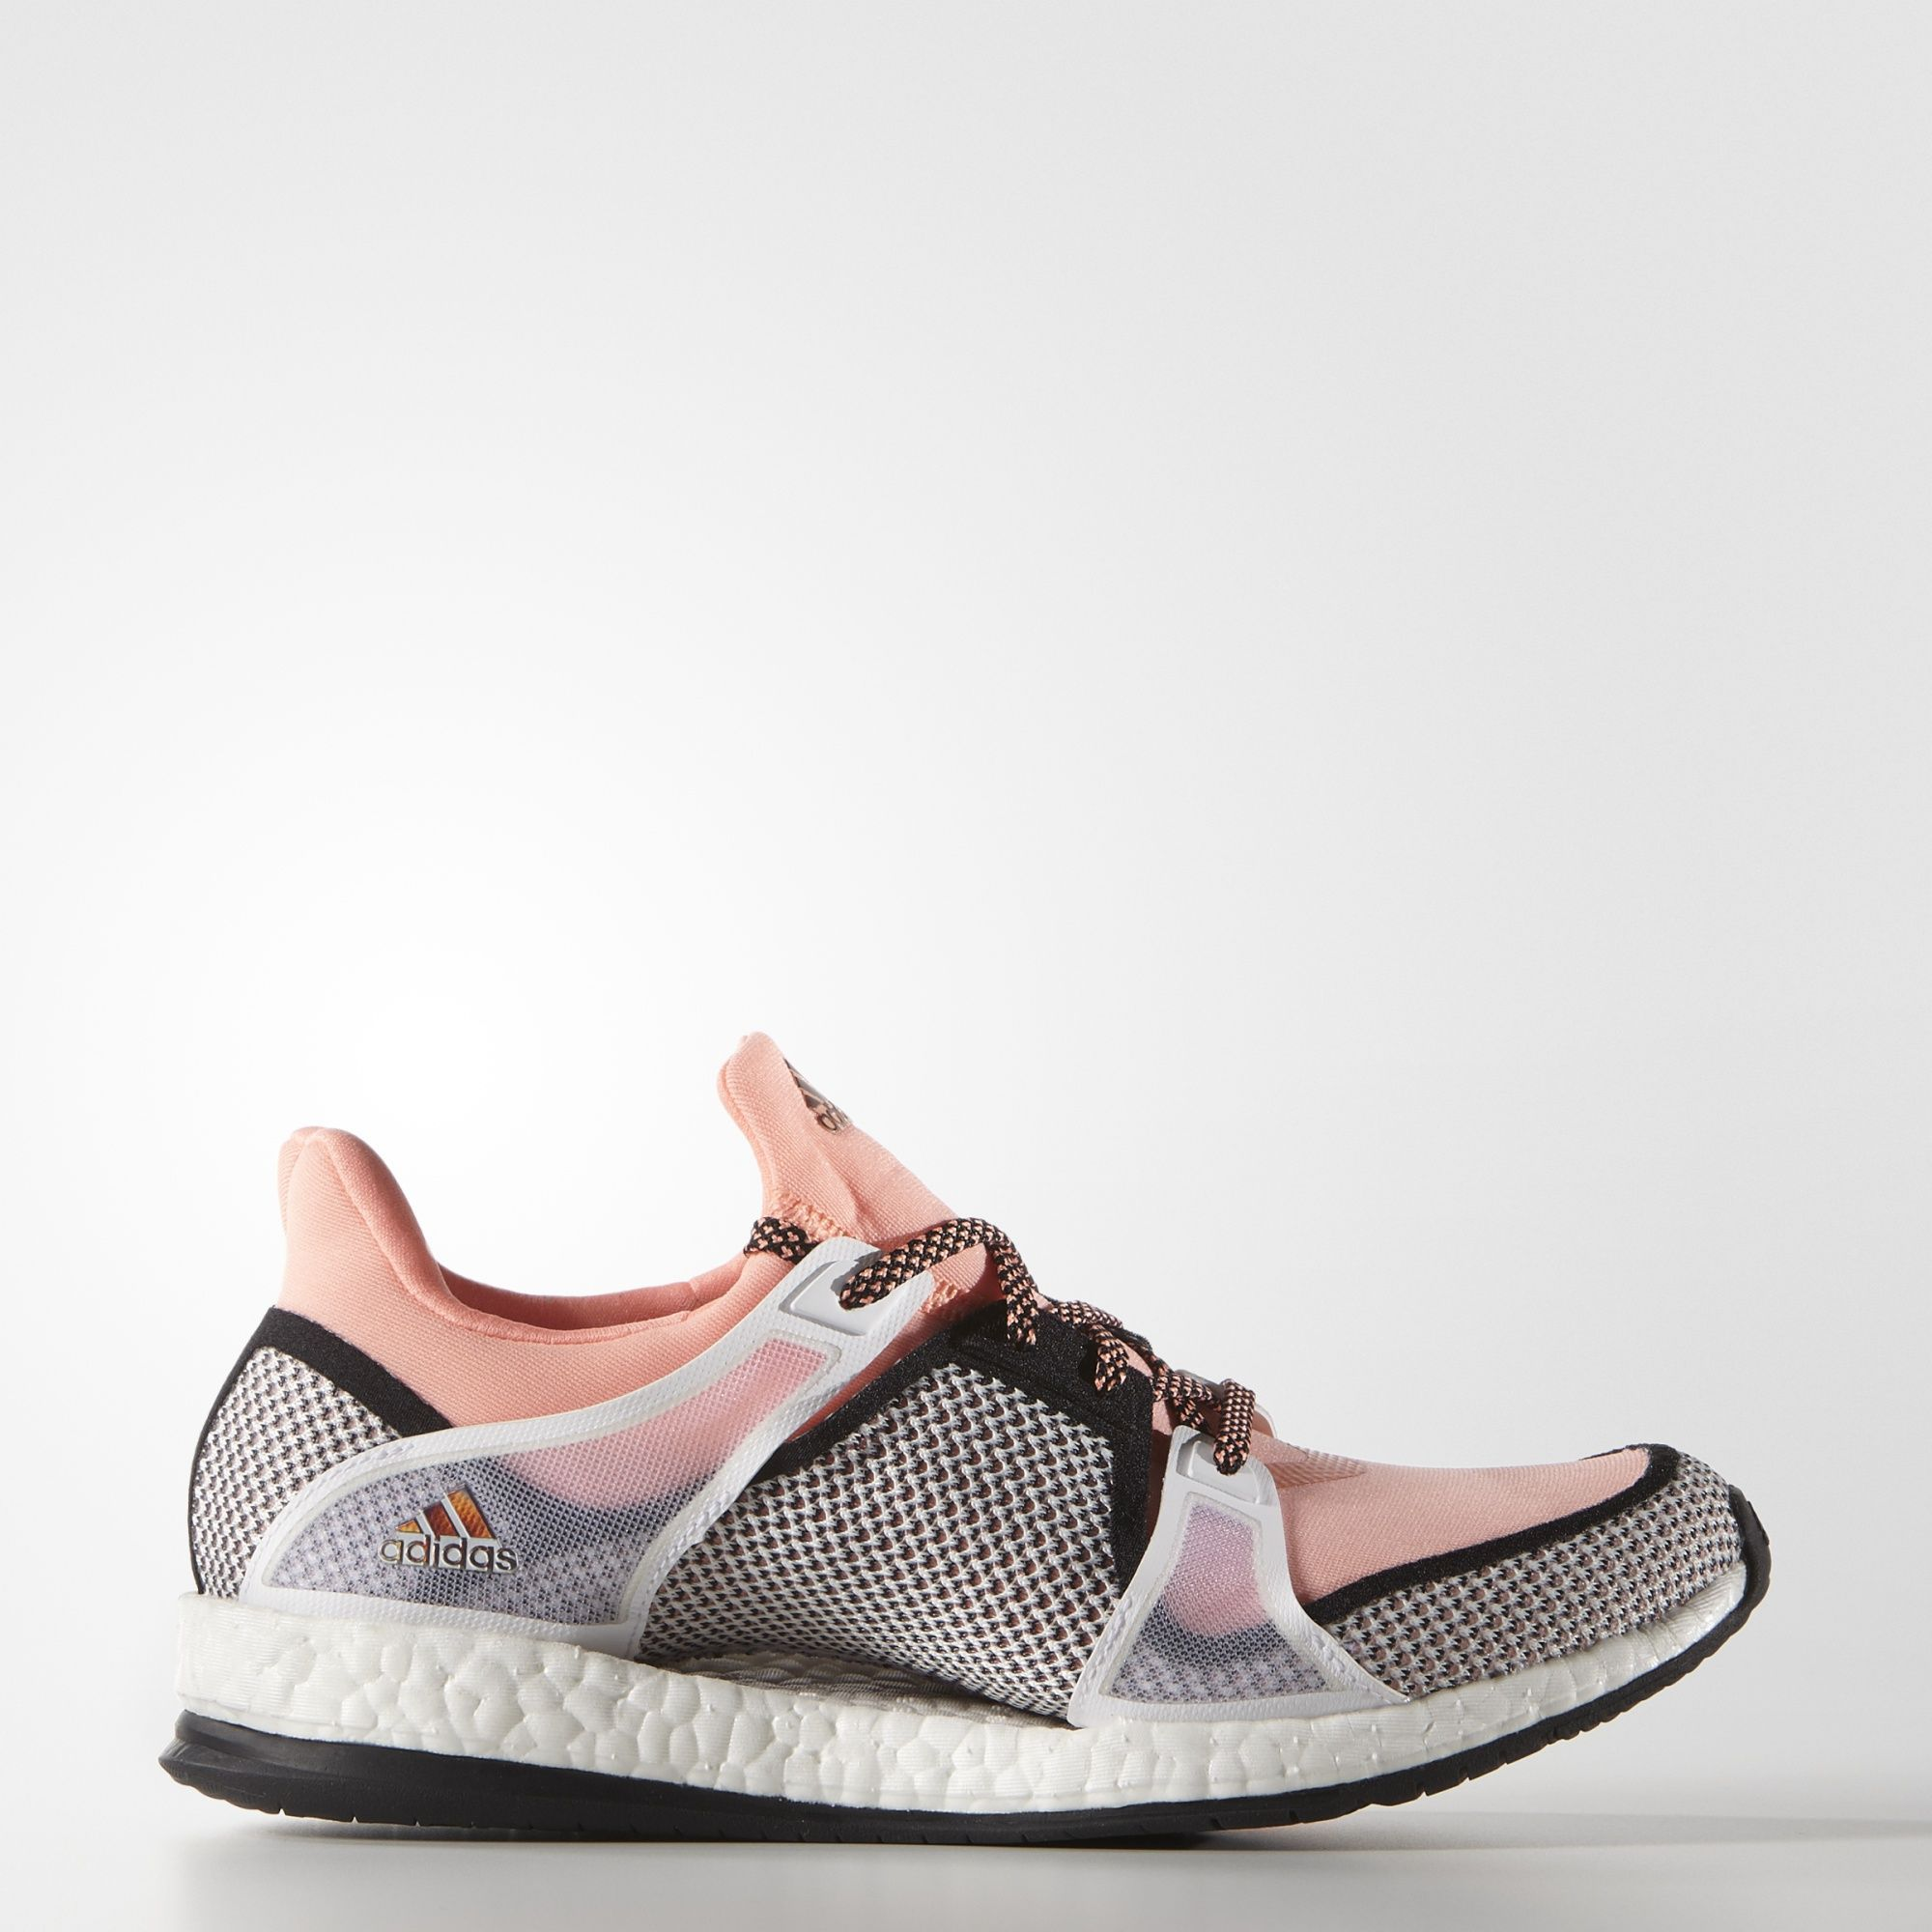 Adidas Pure Boost X Training Shoes Sneakers Men Fashion Sneakers Fashion Adidas Pure Boost